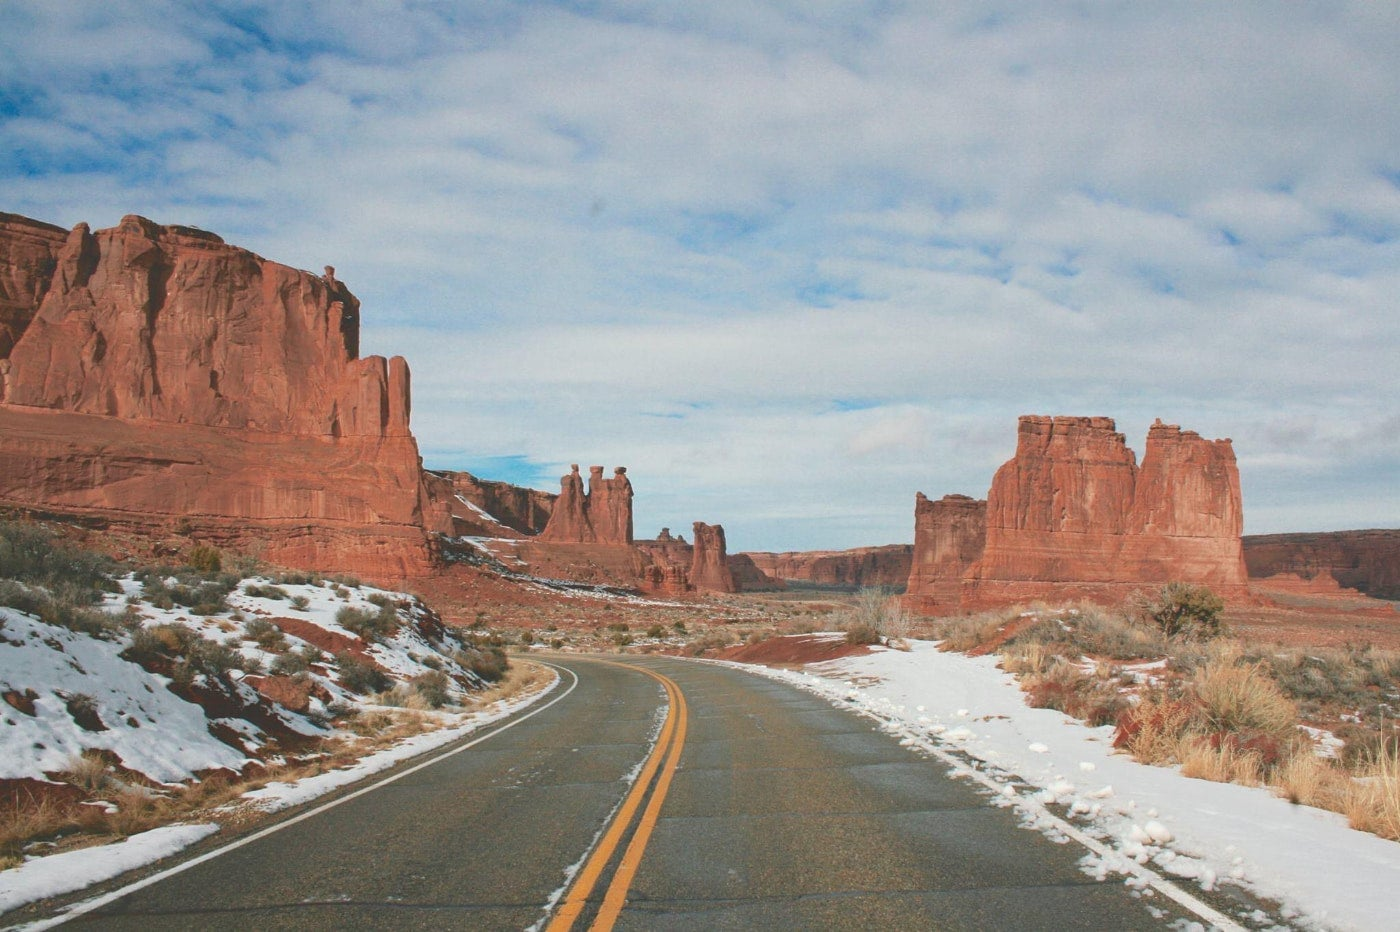 Two lane road winds through the snow-dusted desert in arches national park surrounded by red rock formations